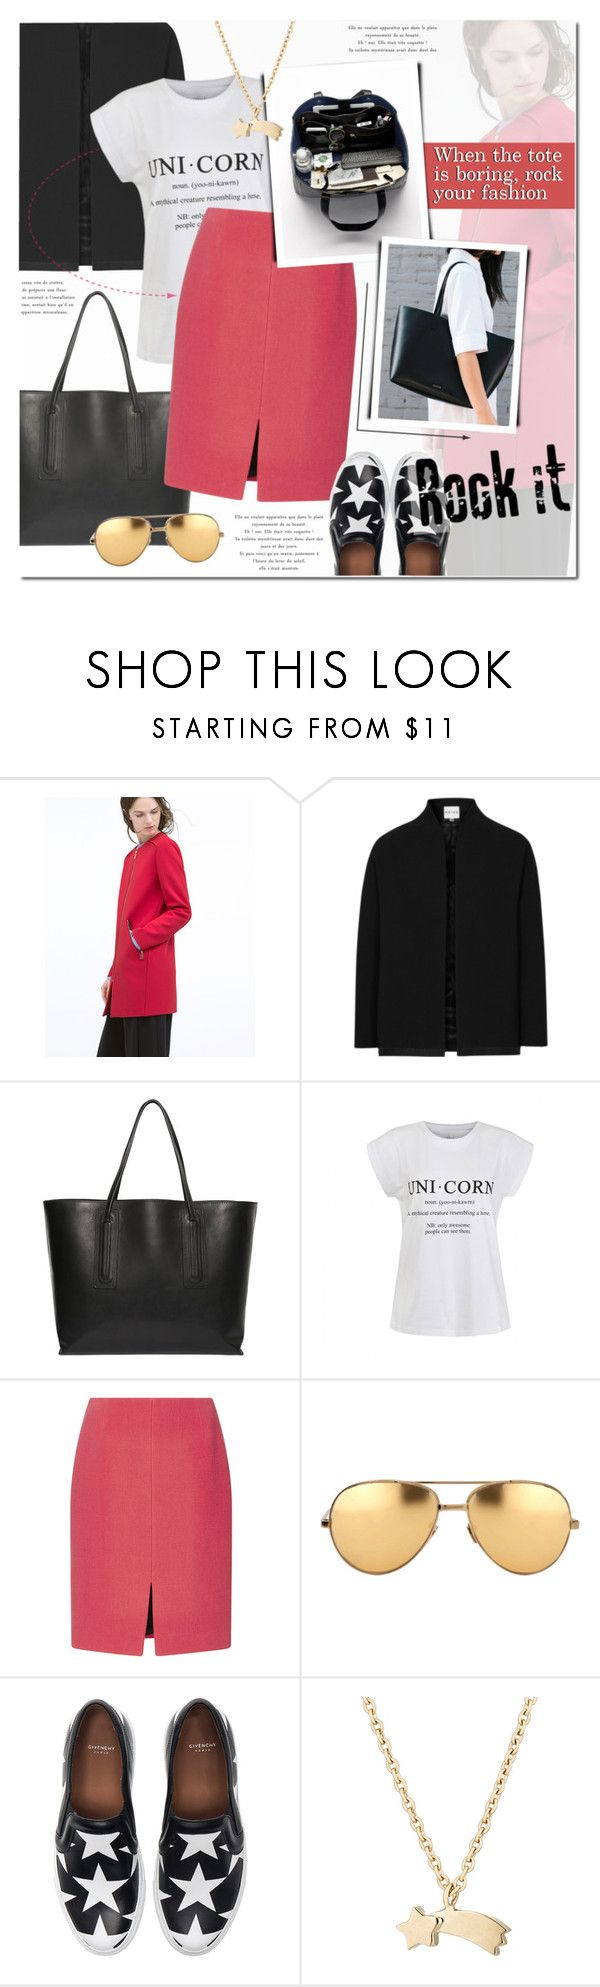 """Tote Bags"" by anna-anica ❤ liked on Polyvore featuring Zara, Reiss, Rick Owens, Ally Fashion, Sonia Rykiel, Linda Farrow, Givenchy, Minor Obsessions, women's clothing and women"